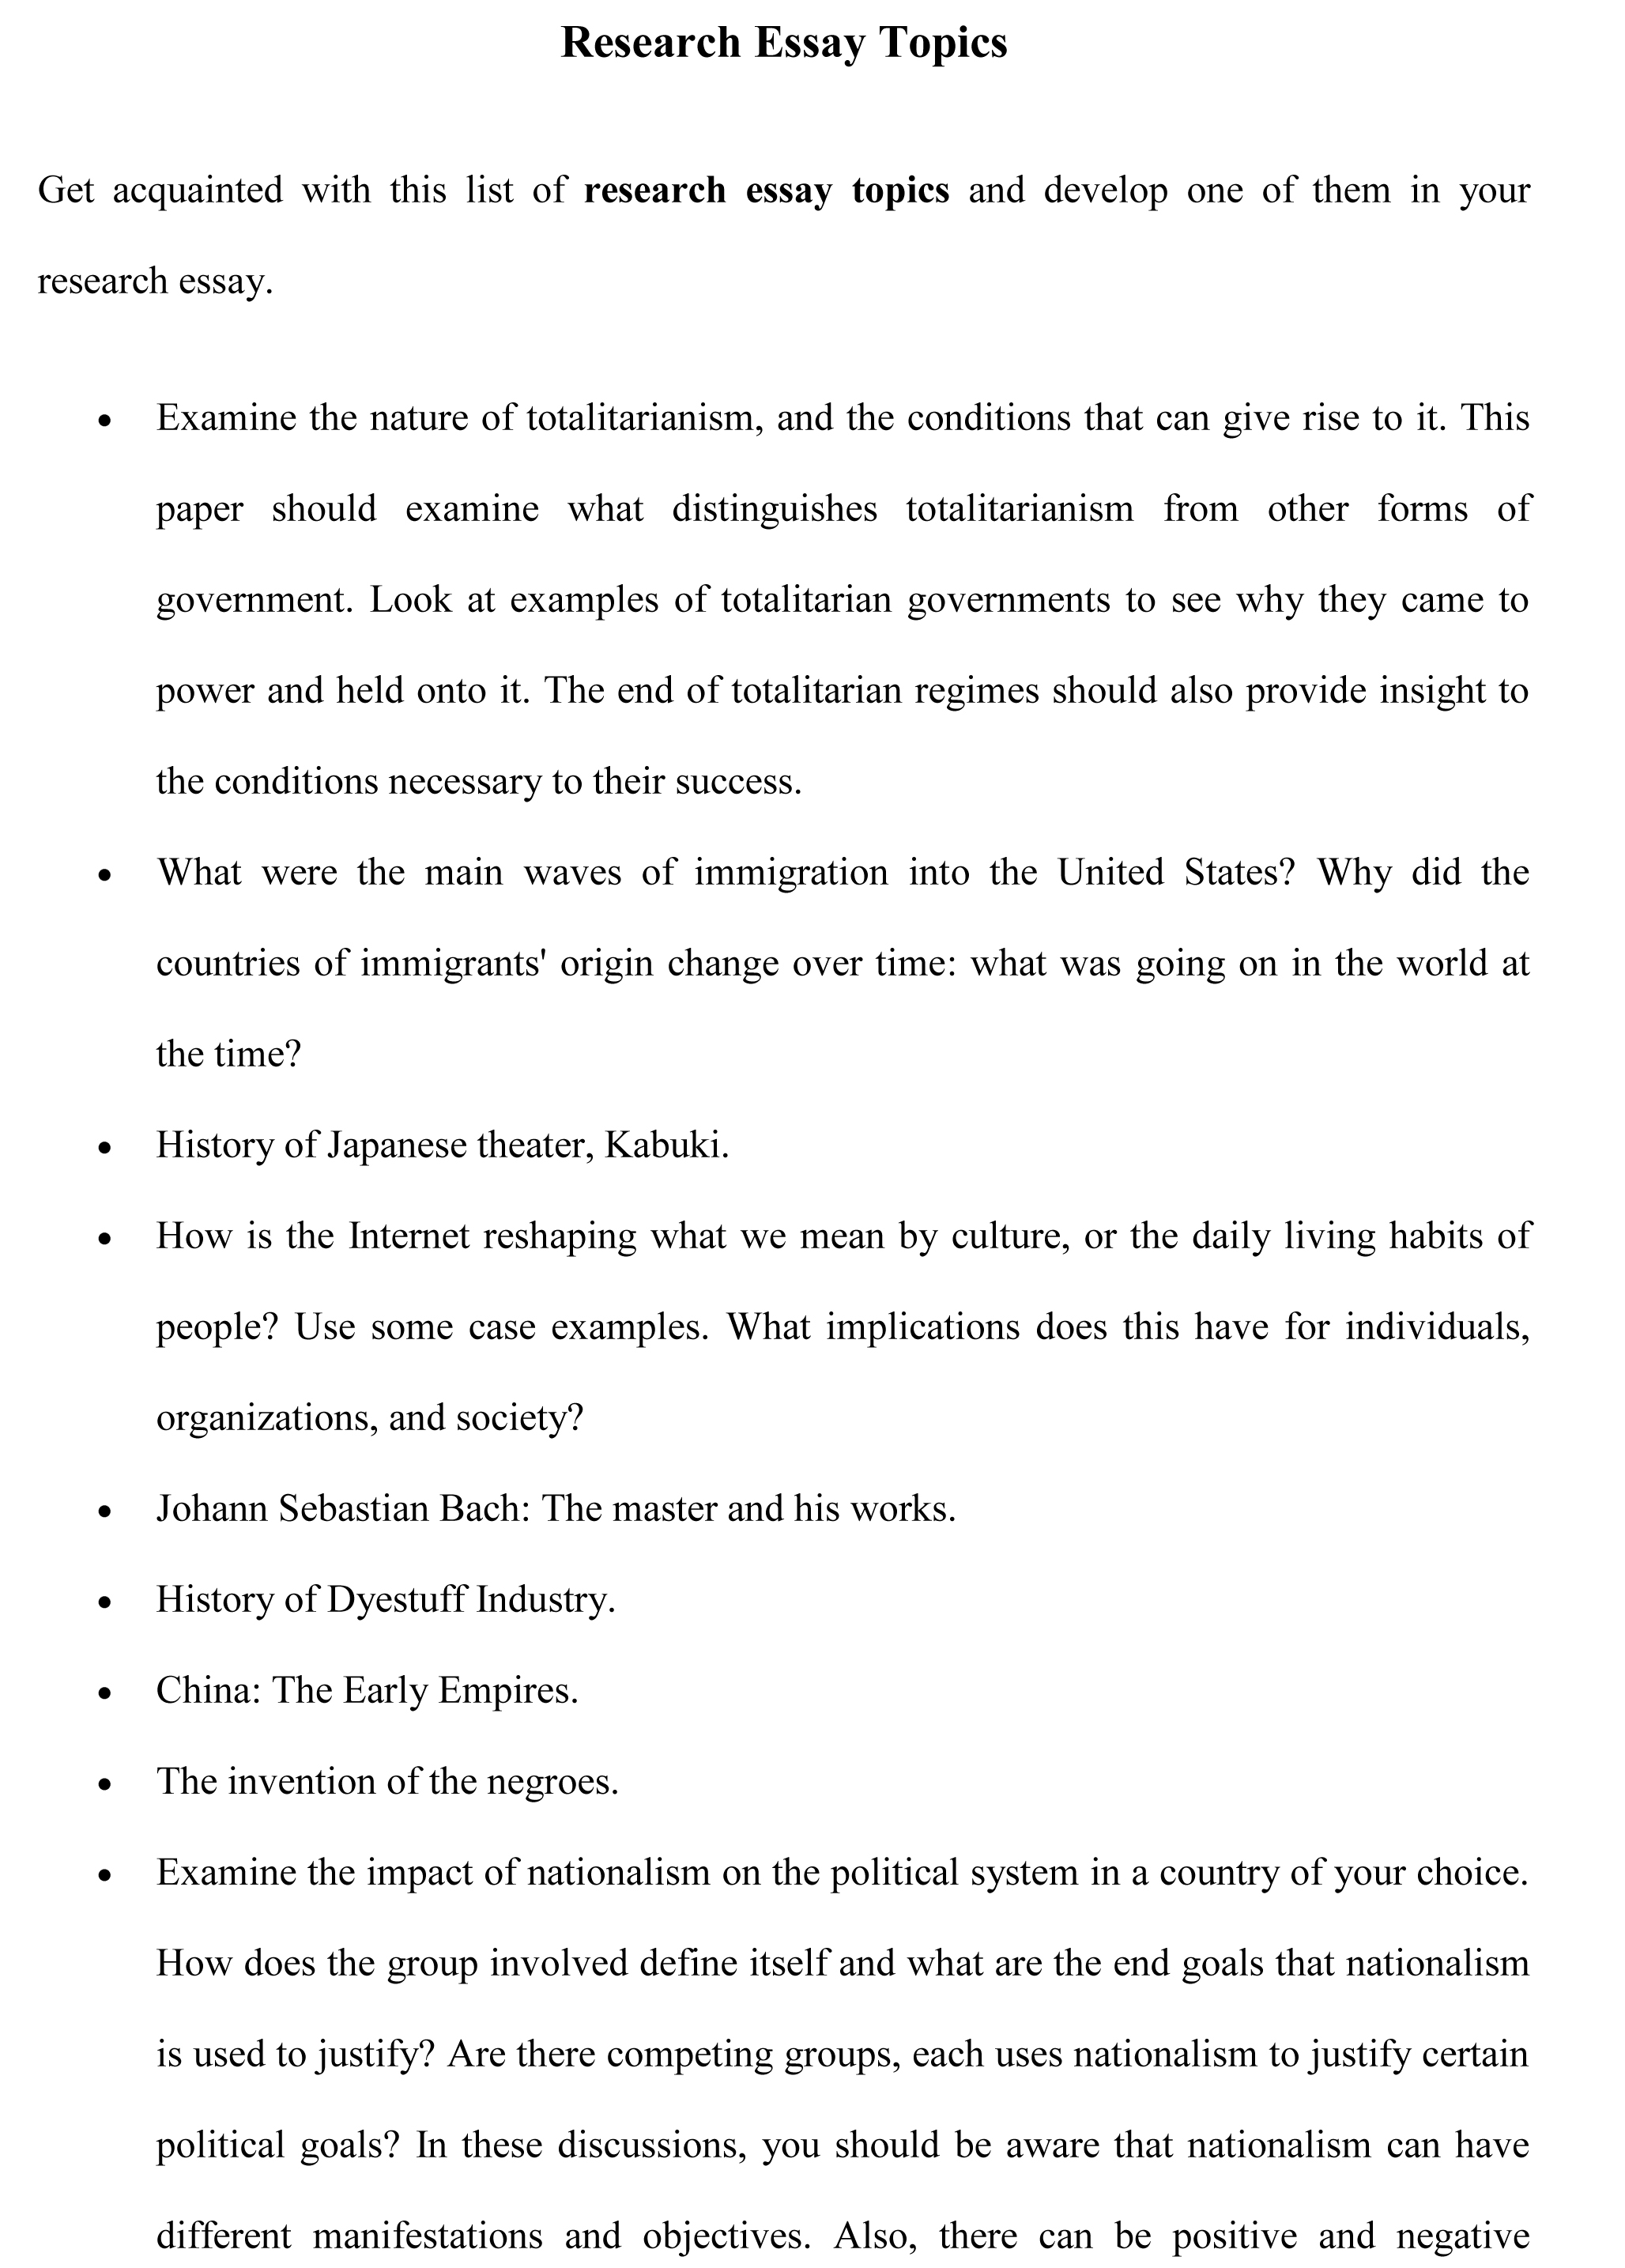 003 Topics To Write Research Paper On Essay Fearsome A Fun History Full